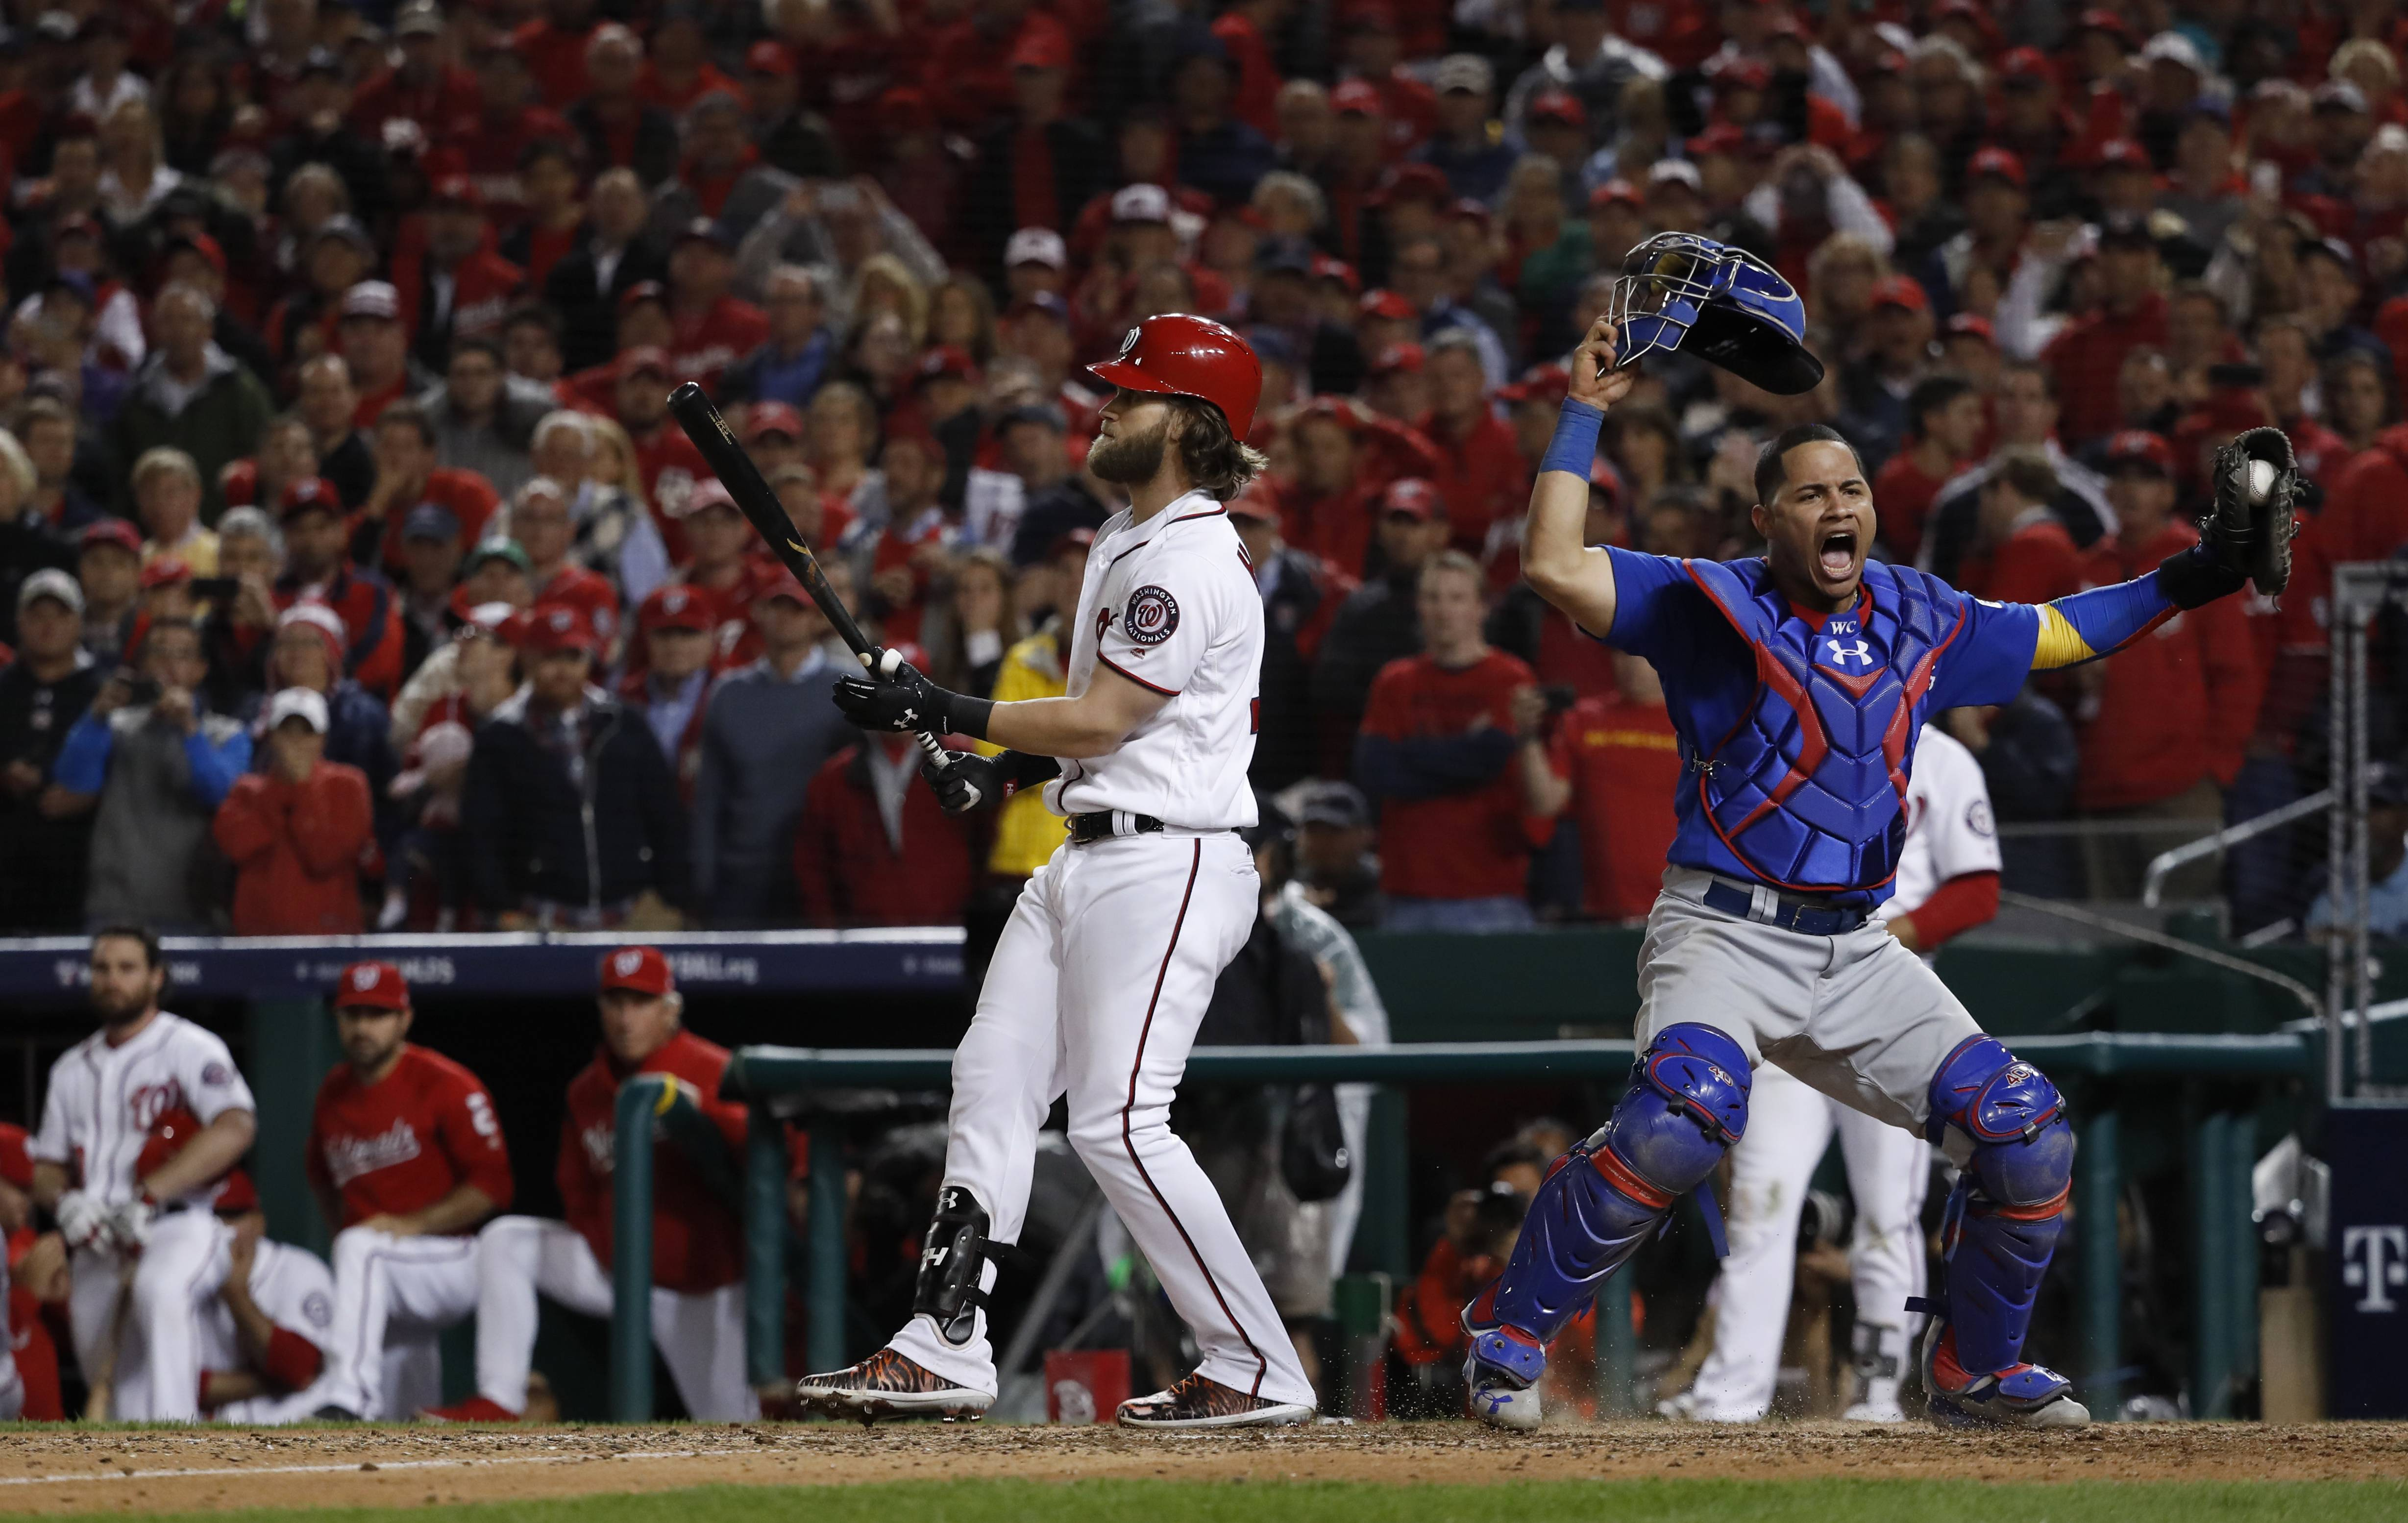 Cubs catcher Willson Contreras begins to celebrate after Washington Nationals' Bryce Harper struck out swinging in the ninth inning to end Game 5 of the National League division series, at Nationals Park, early Friday, in Washington. The Cubs advanced to the NLCS with a 9-8 win.